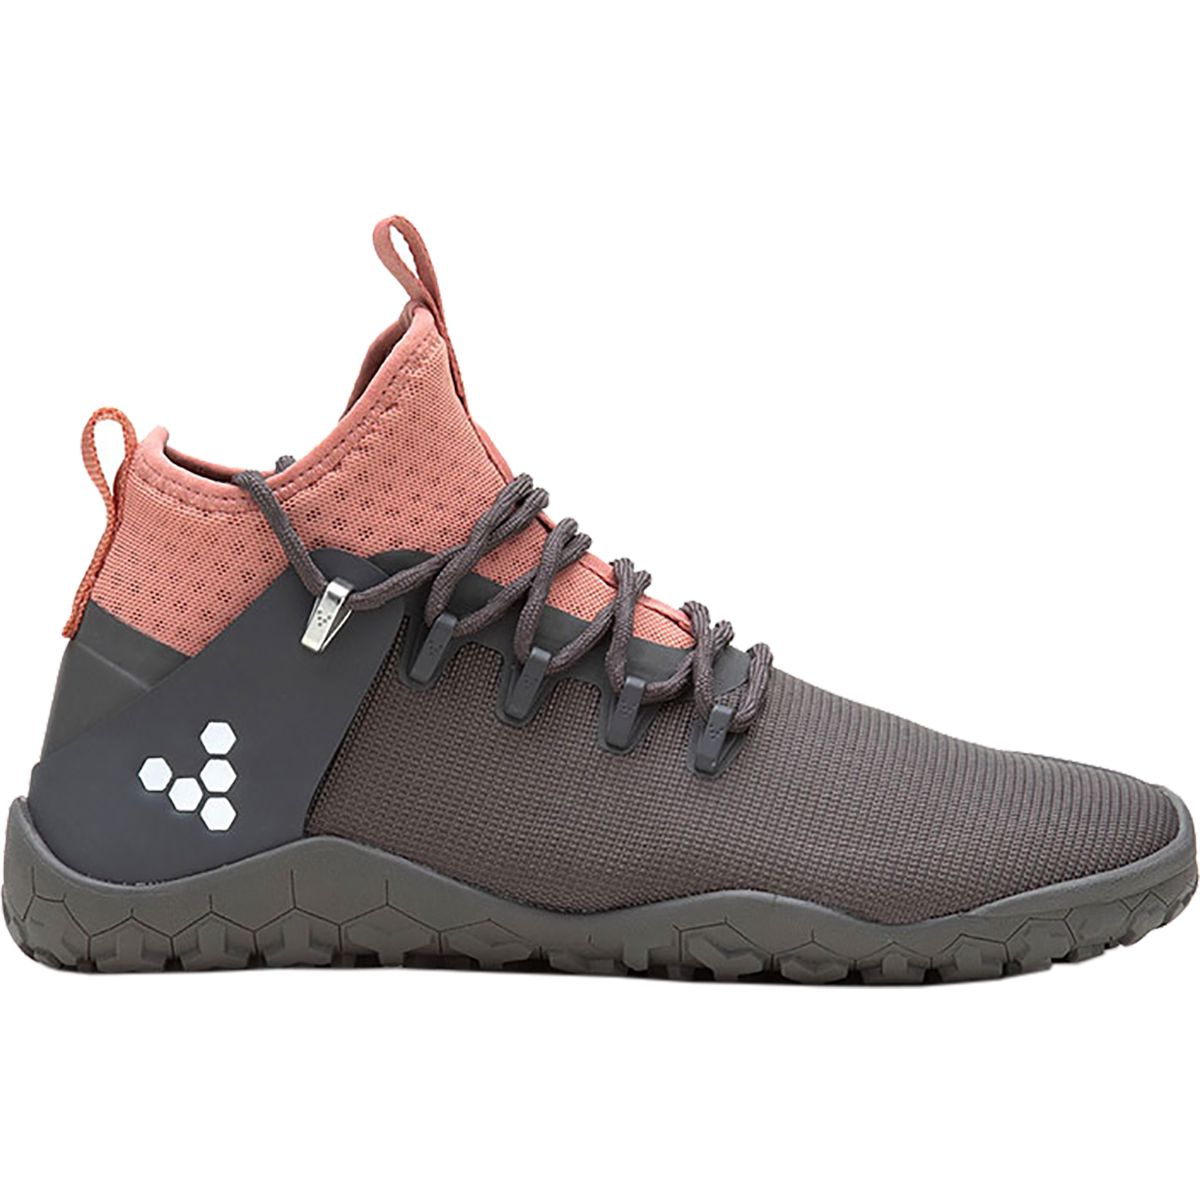 12718d90925 4 of the best women's hiking boots for spring walks - Lifestyle from ...